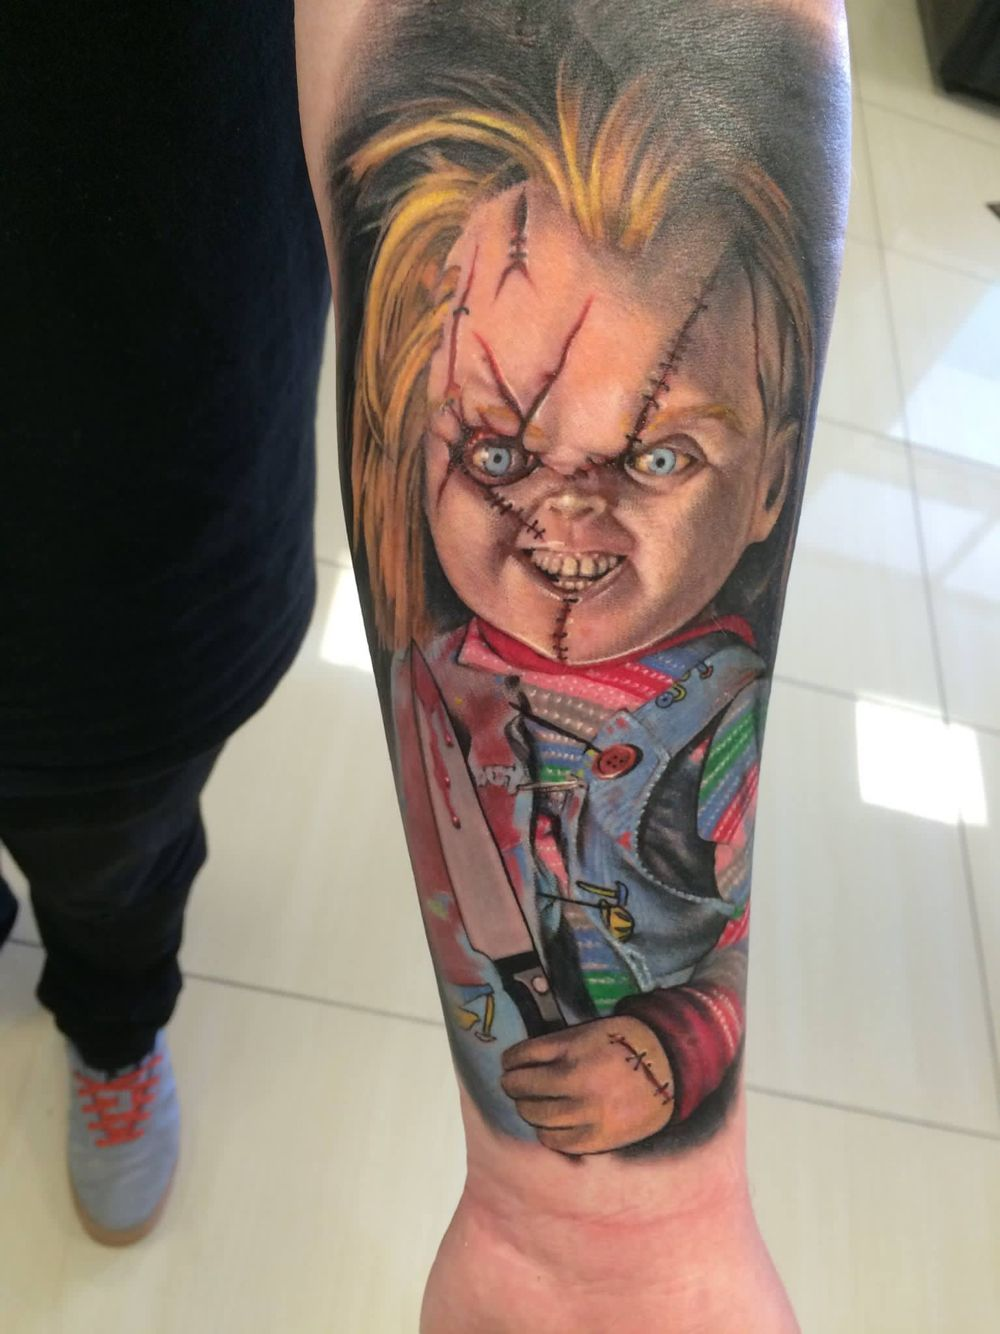 awesome chucky tattoo exorcist chuckie tattoo pinterest chucky tattoo and horror. Black Bedroom Furniture Sets. Home Design Ideas